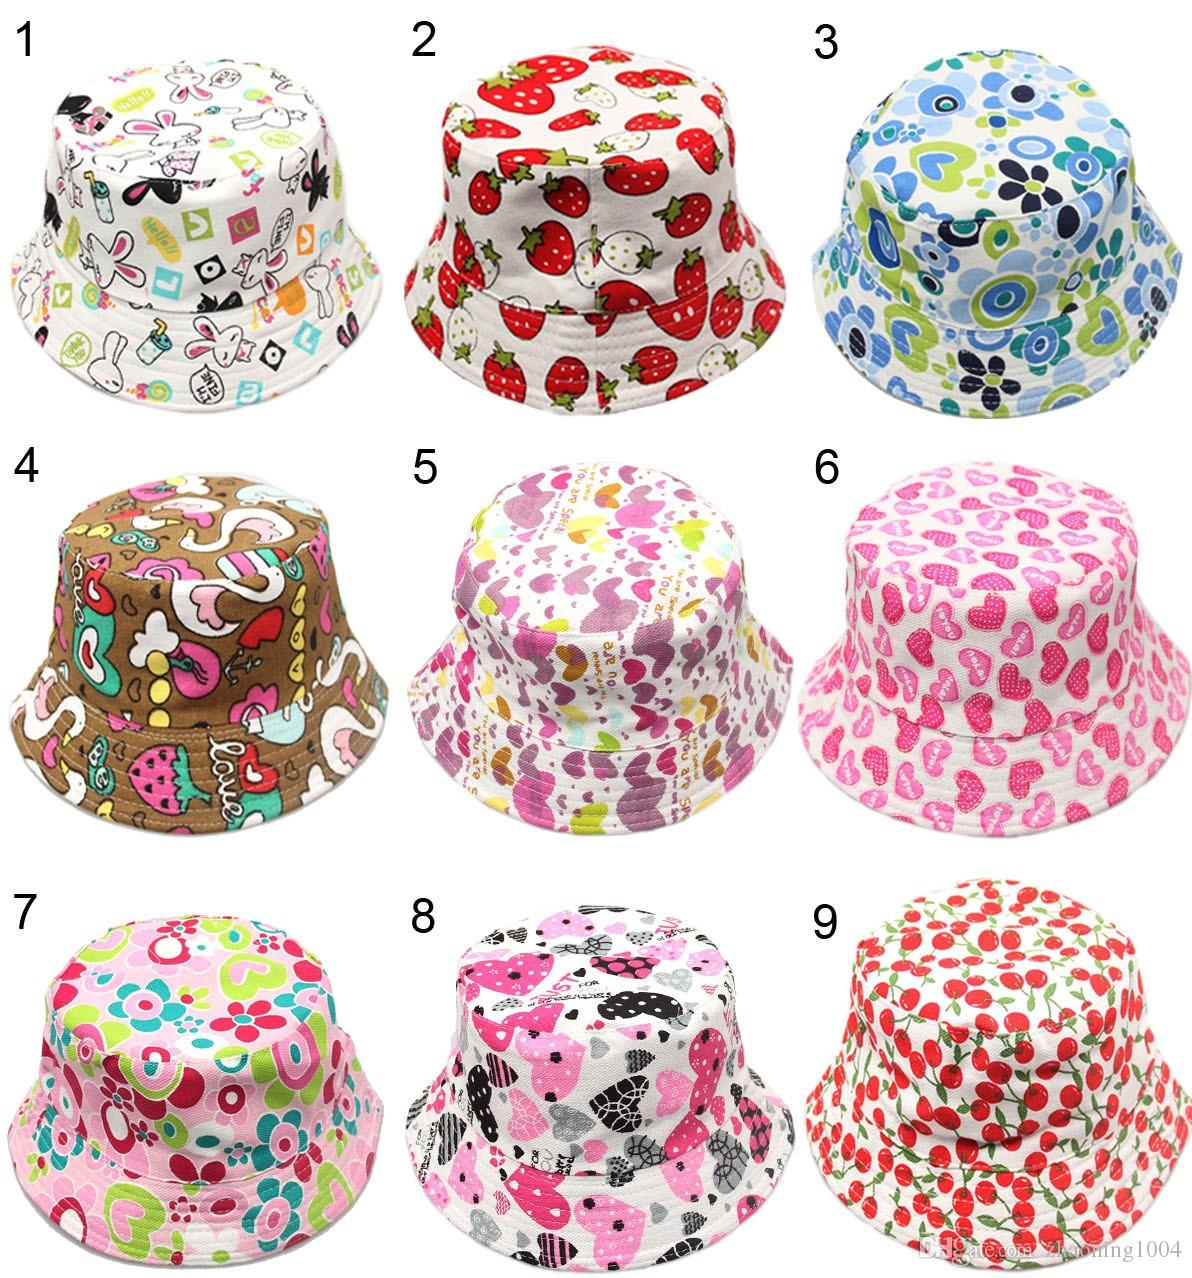 Apparel Accessories New Fashion Cartoon Colorful Fish Design Children Sun Straw Hats Kids Summer Bucket Cap Girl's Hats